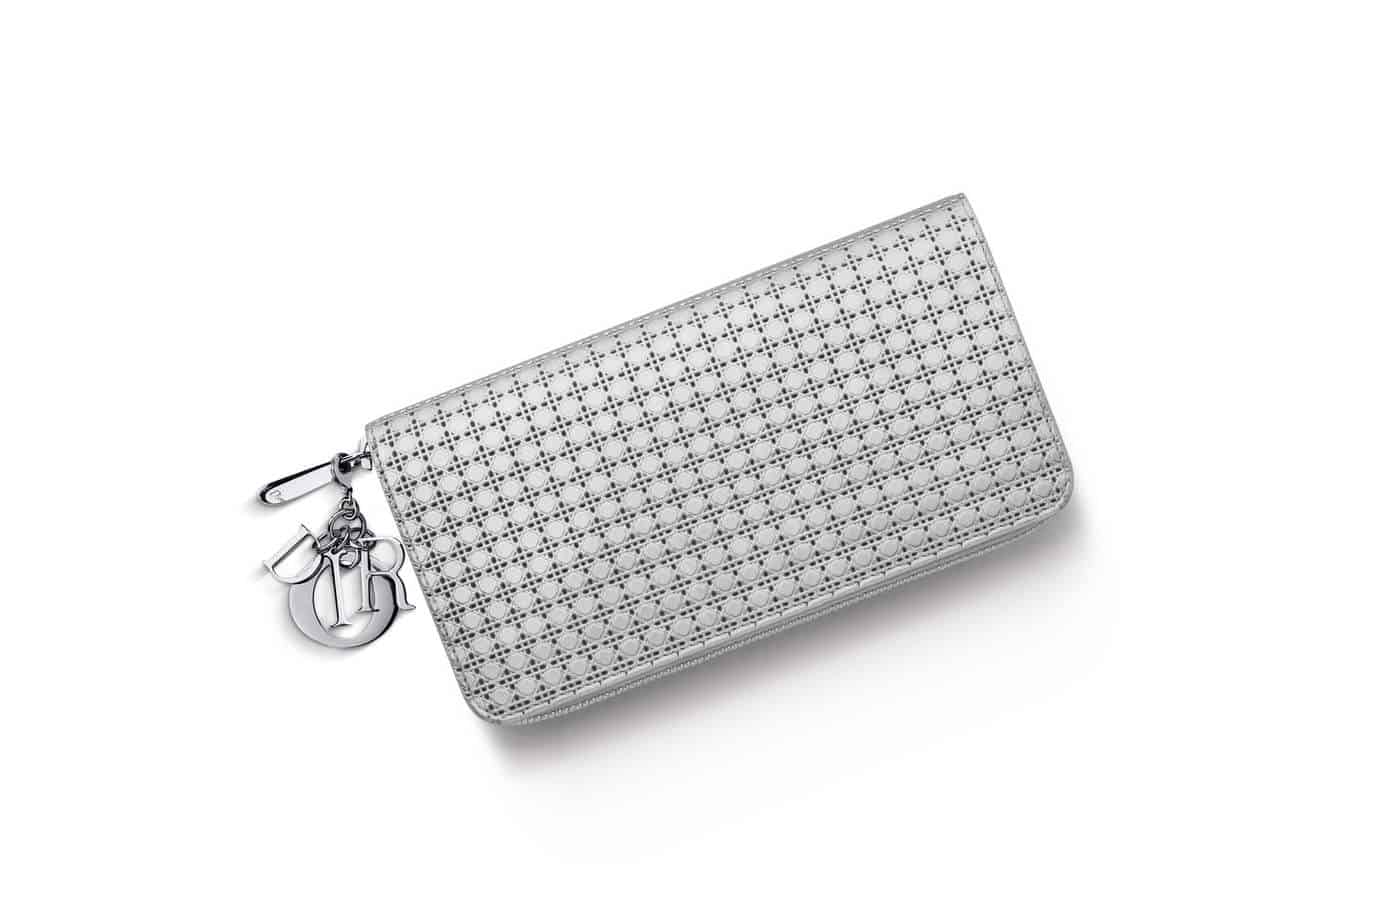 """LADY DIOR"""" VOYAGEUR WALLET SILVER-TONE PERFORATED CALFSKIN – Posh ... 1fe7d3d52579e"""